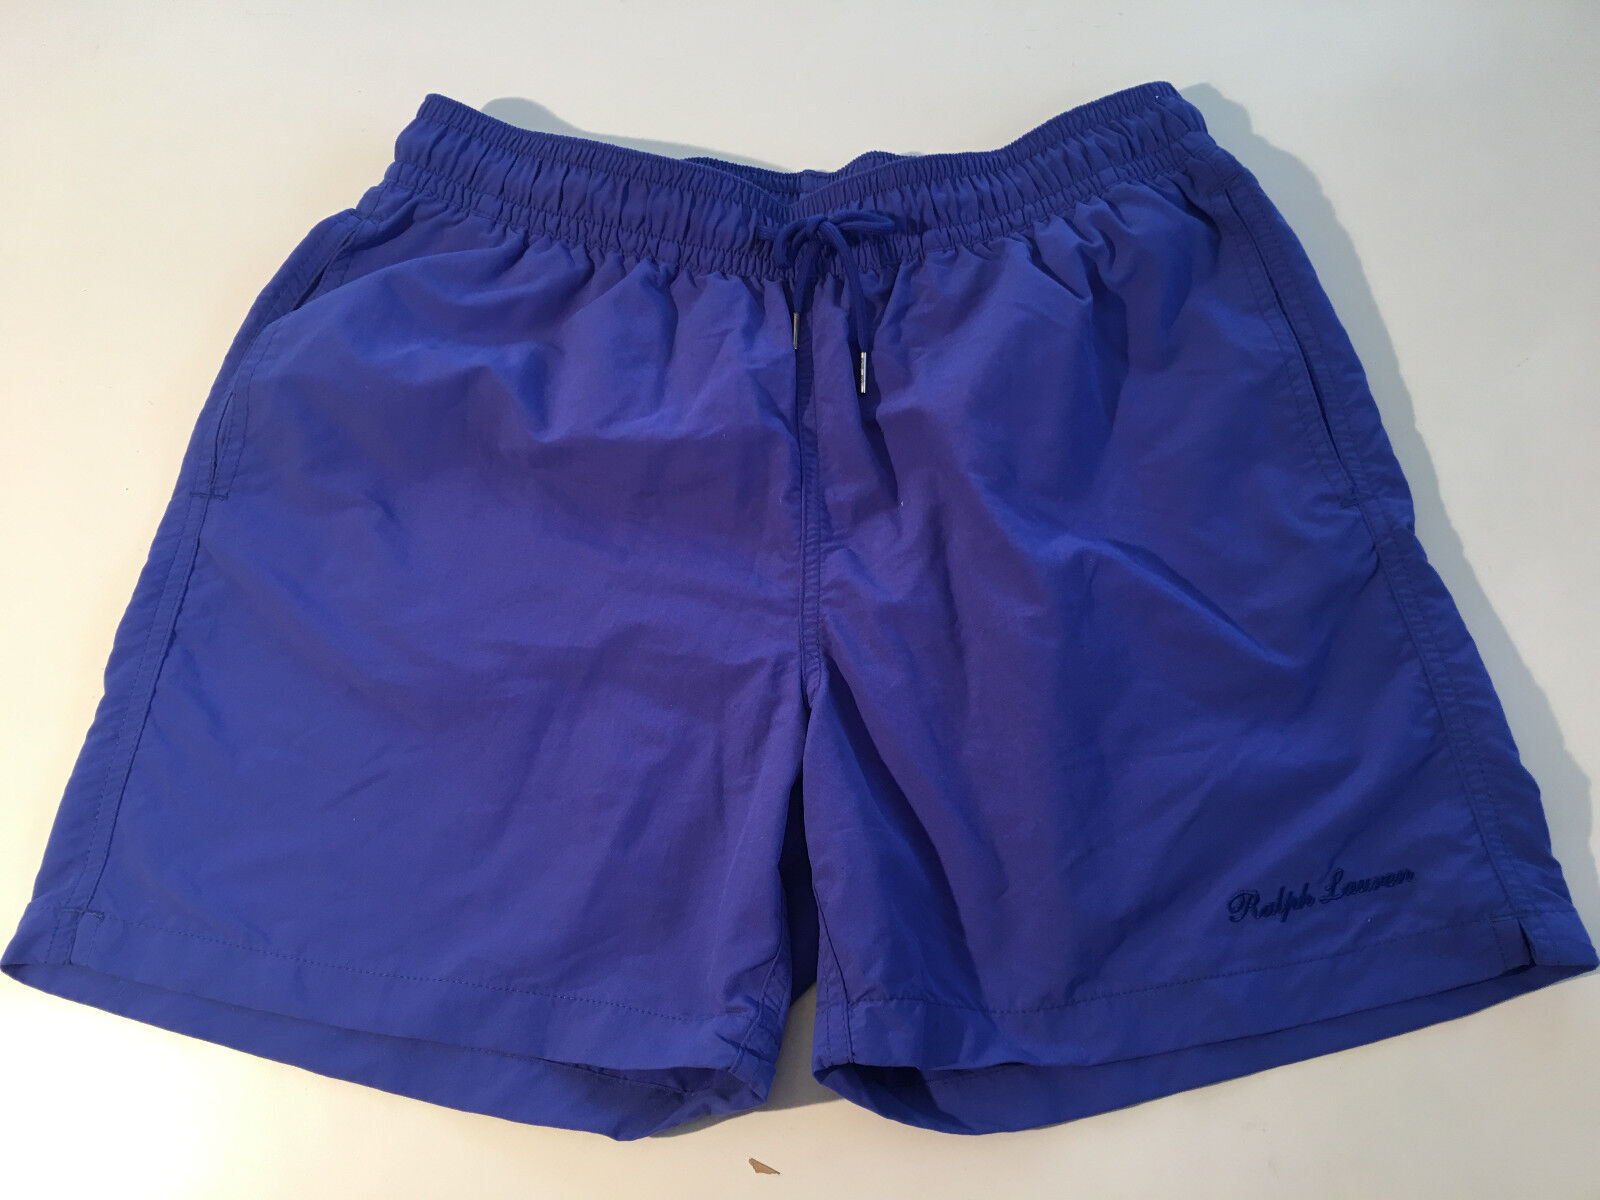 NWT RALPH LAUREN Purple Label Copen bluee Net Liner Swim Shorts Trunks sz  L